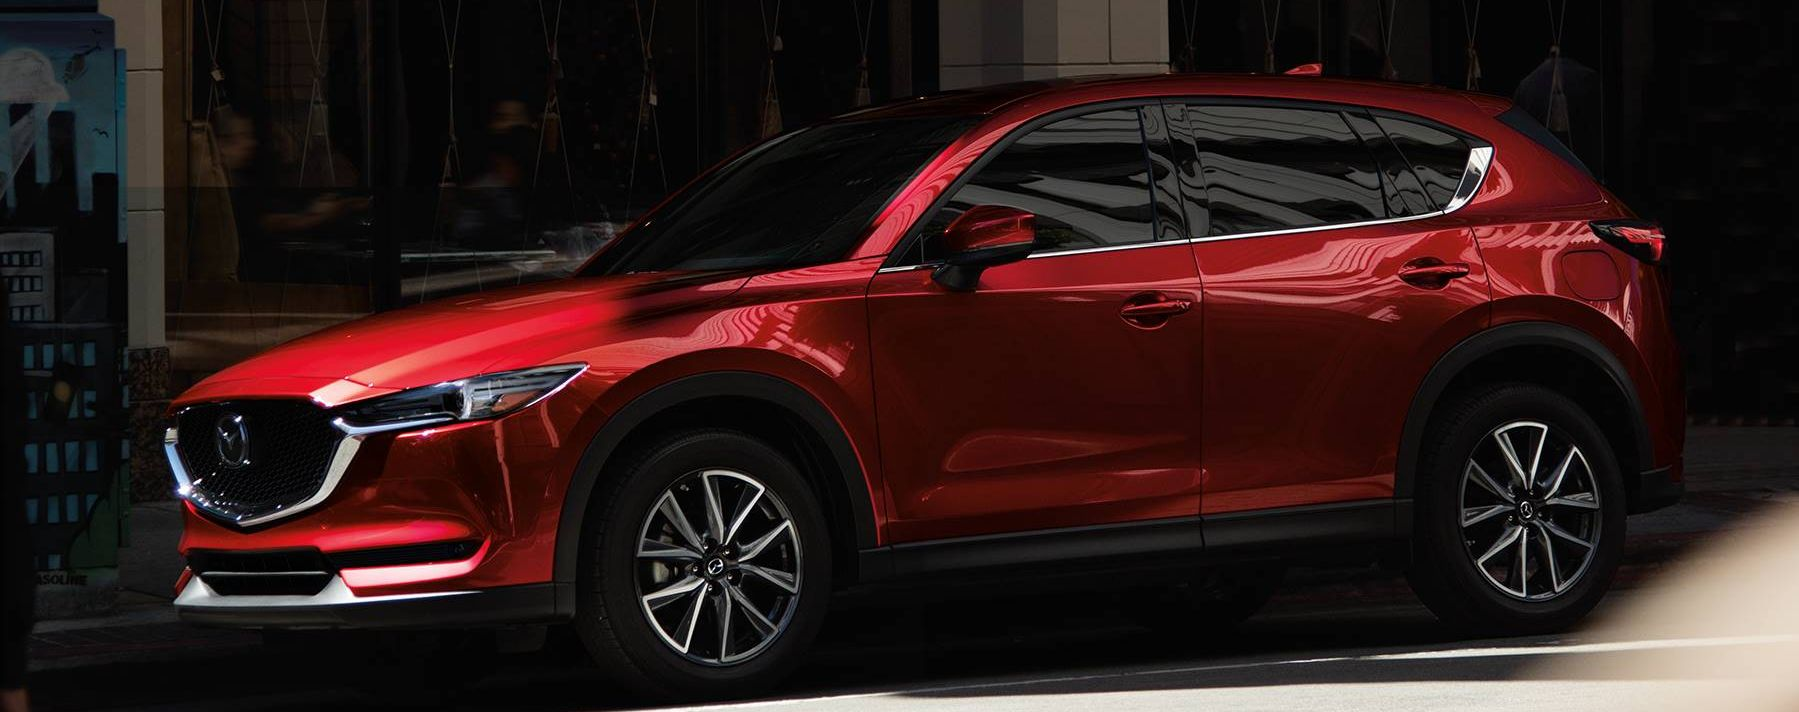 2018 mazda cx 5 financing near rockville md gaithersburg mazda. Black Bedroom Furniture Sets. Home Design Ideas